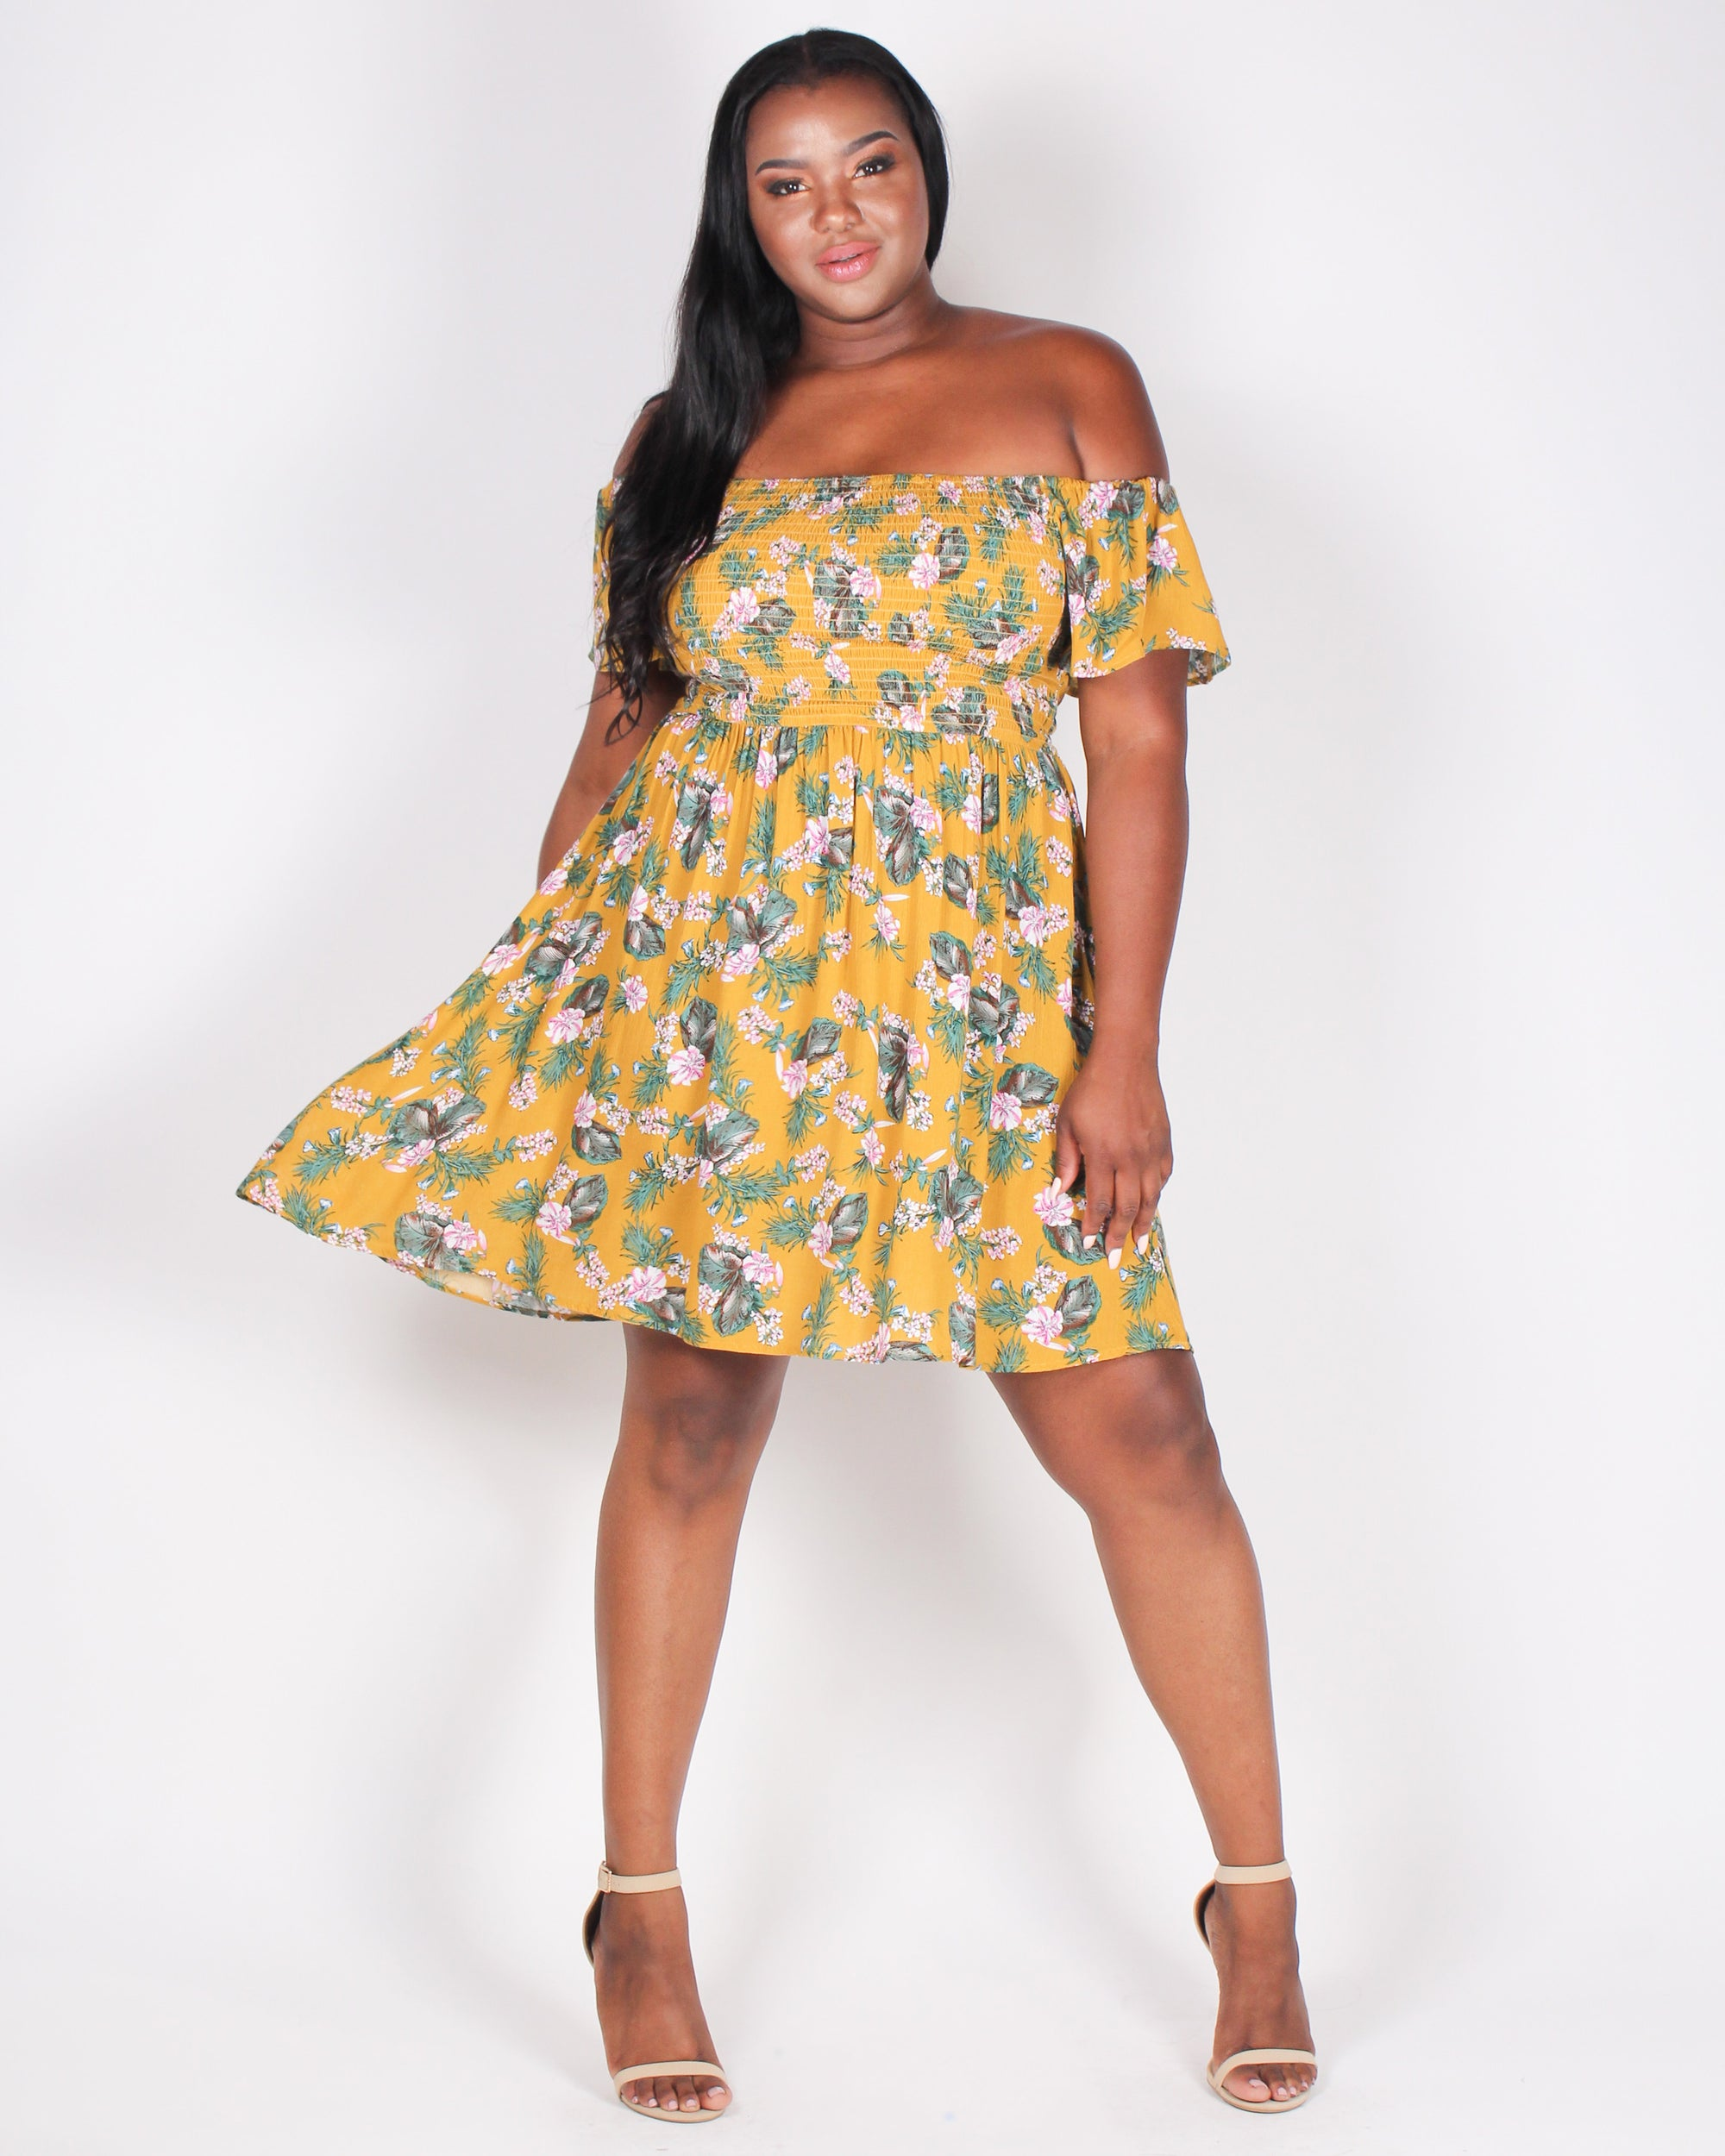 Fashion Q Shop Q Floral Escape Off the Shoulder Plus Sundress (Mustard) ITD4106